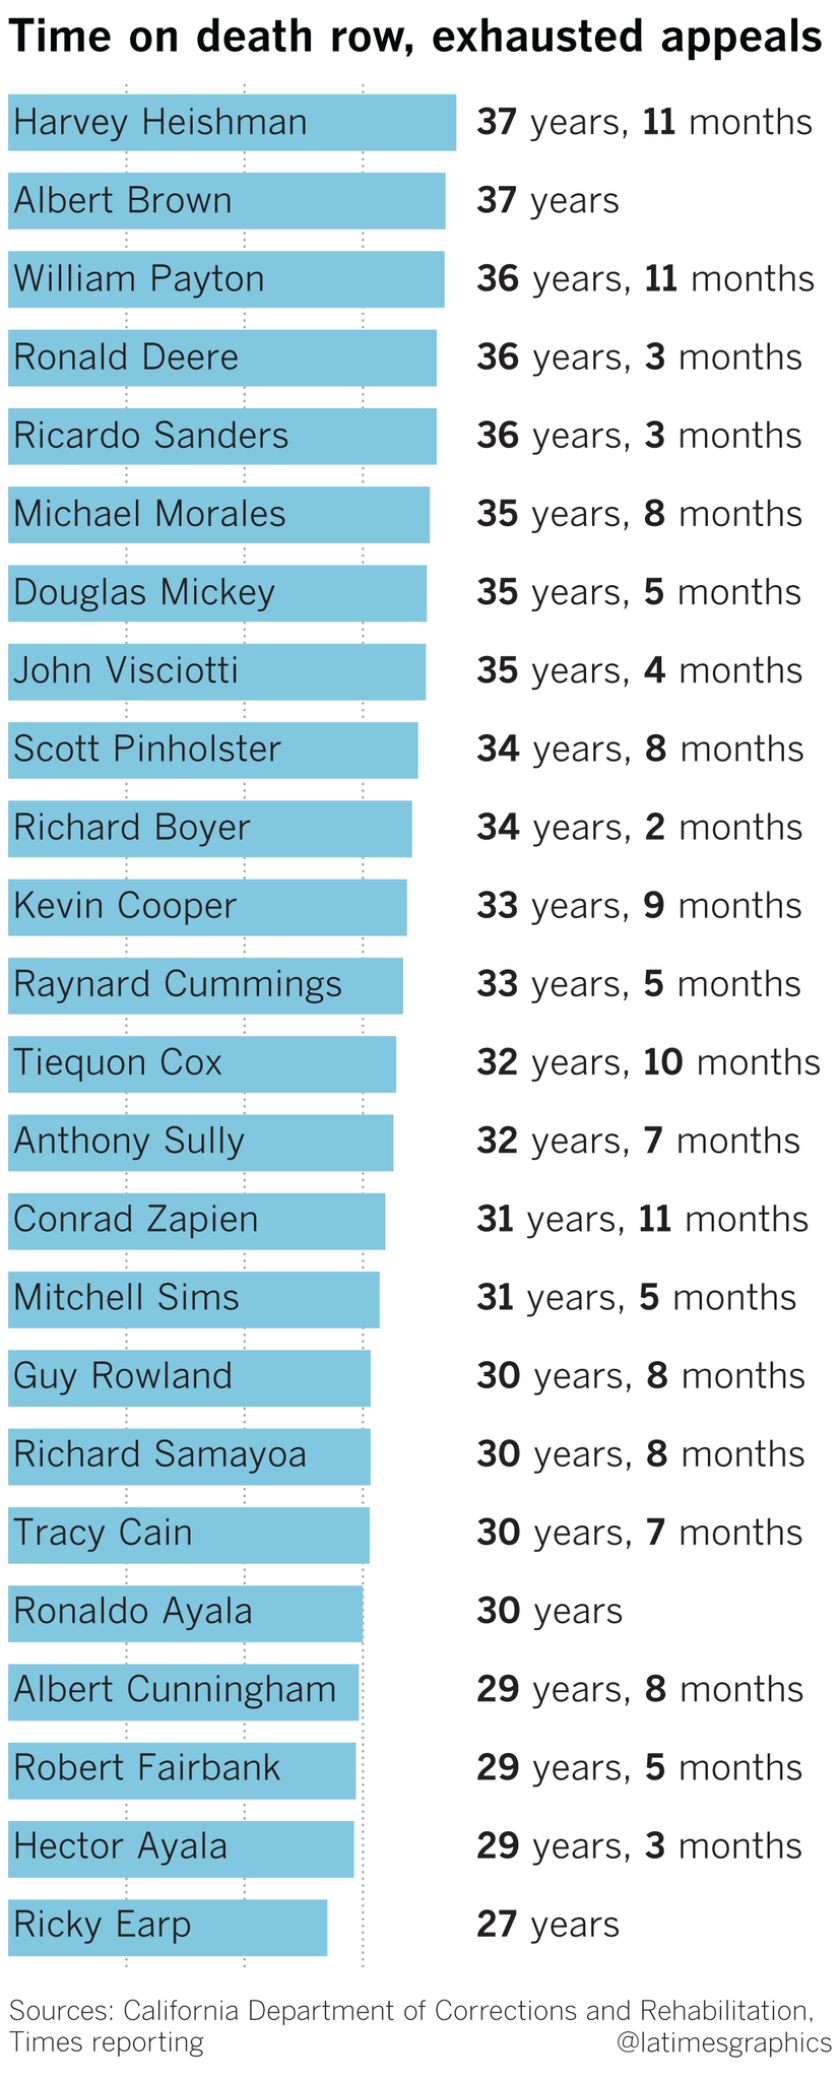 Time served by the 24 inmates who have exhausted all appeals